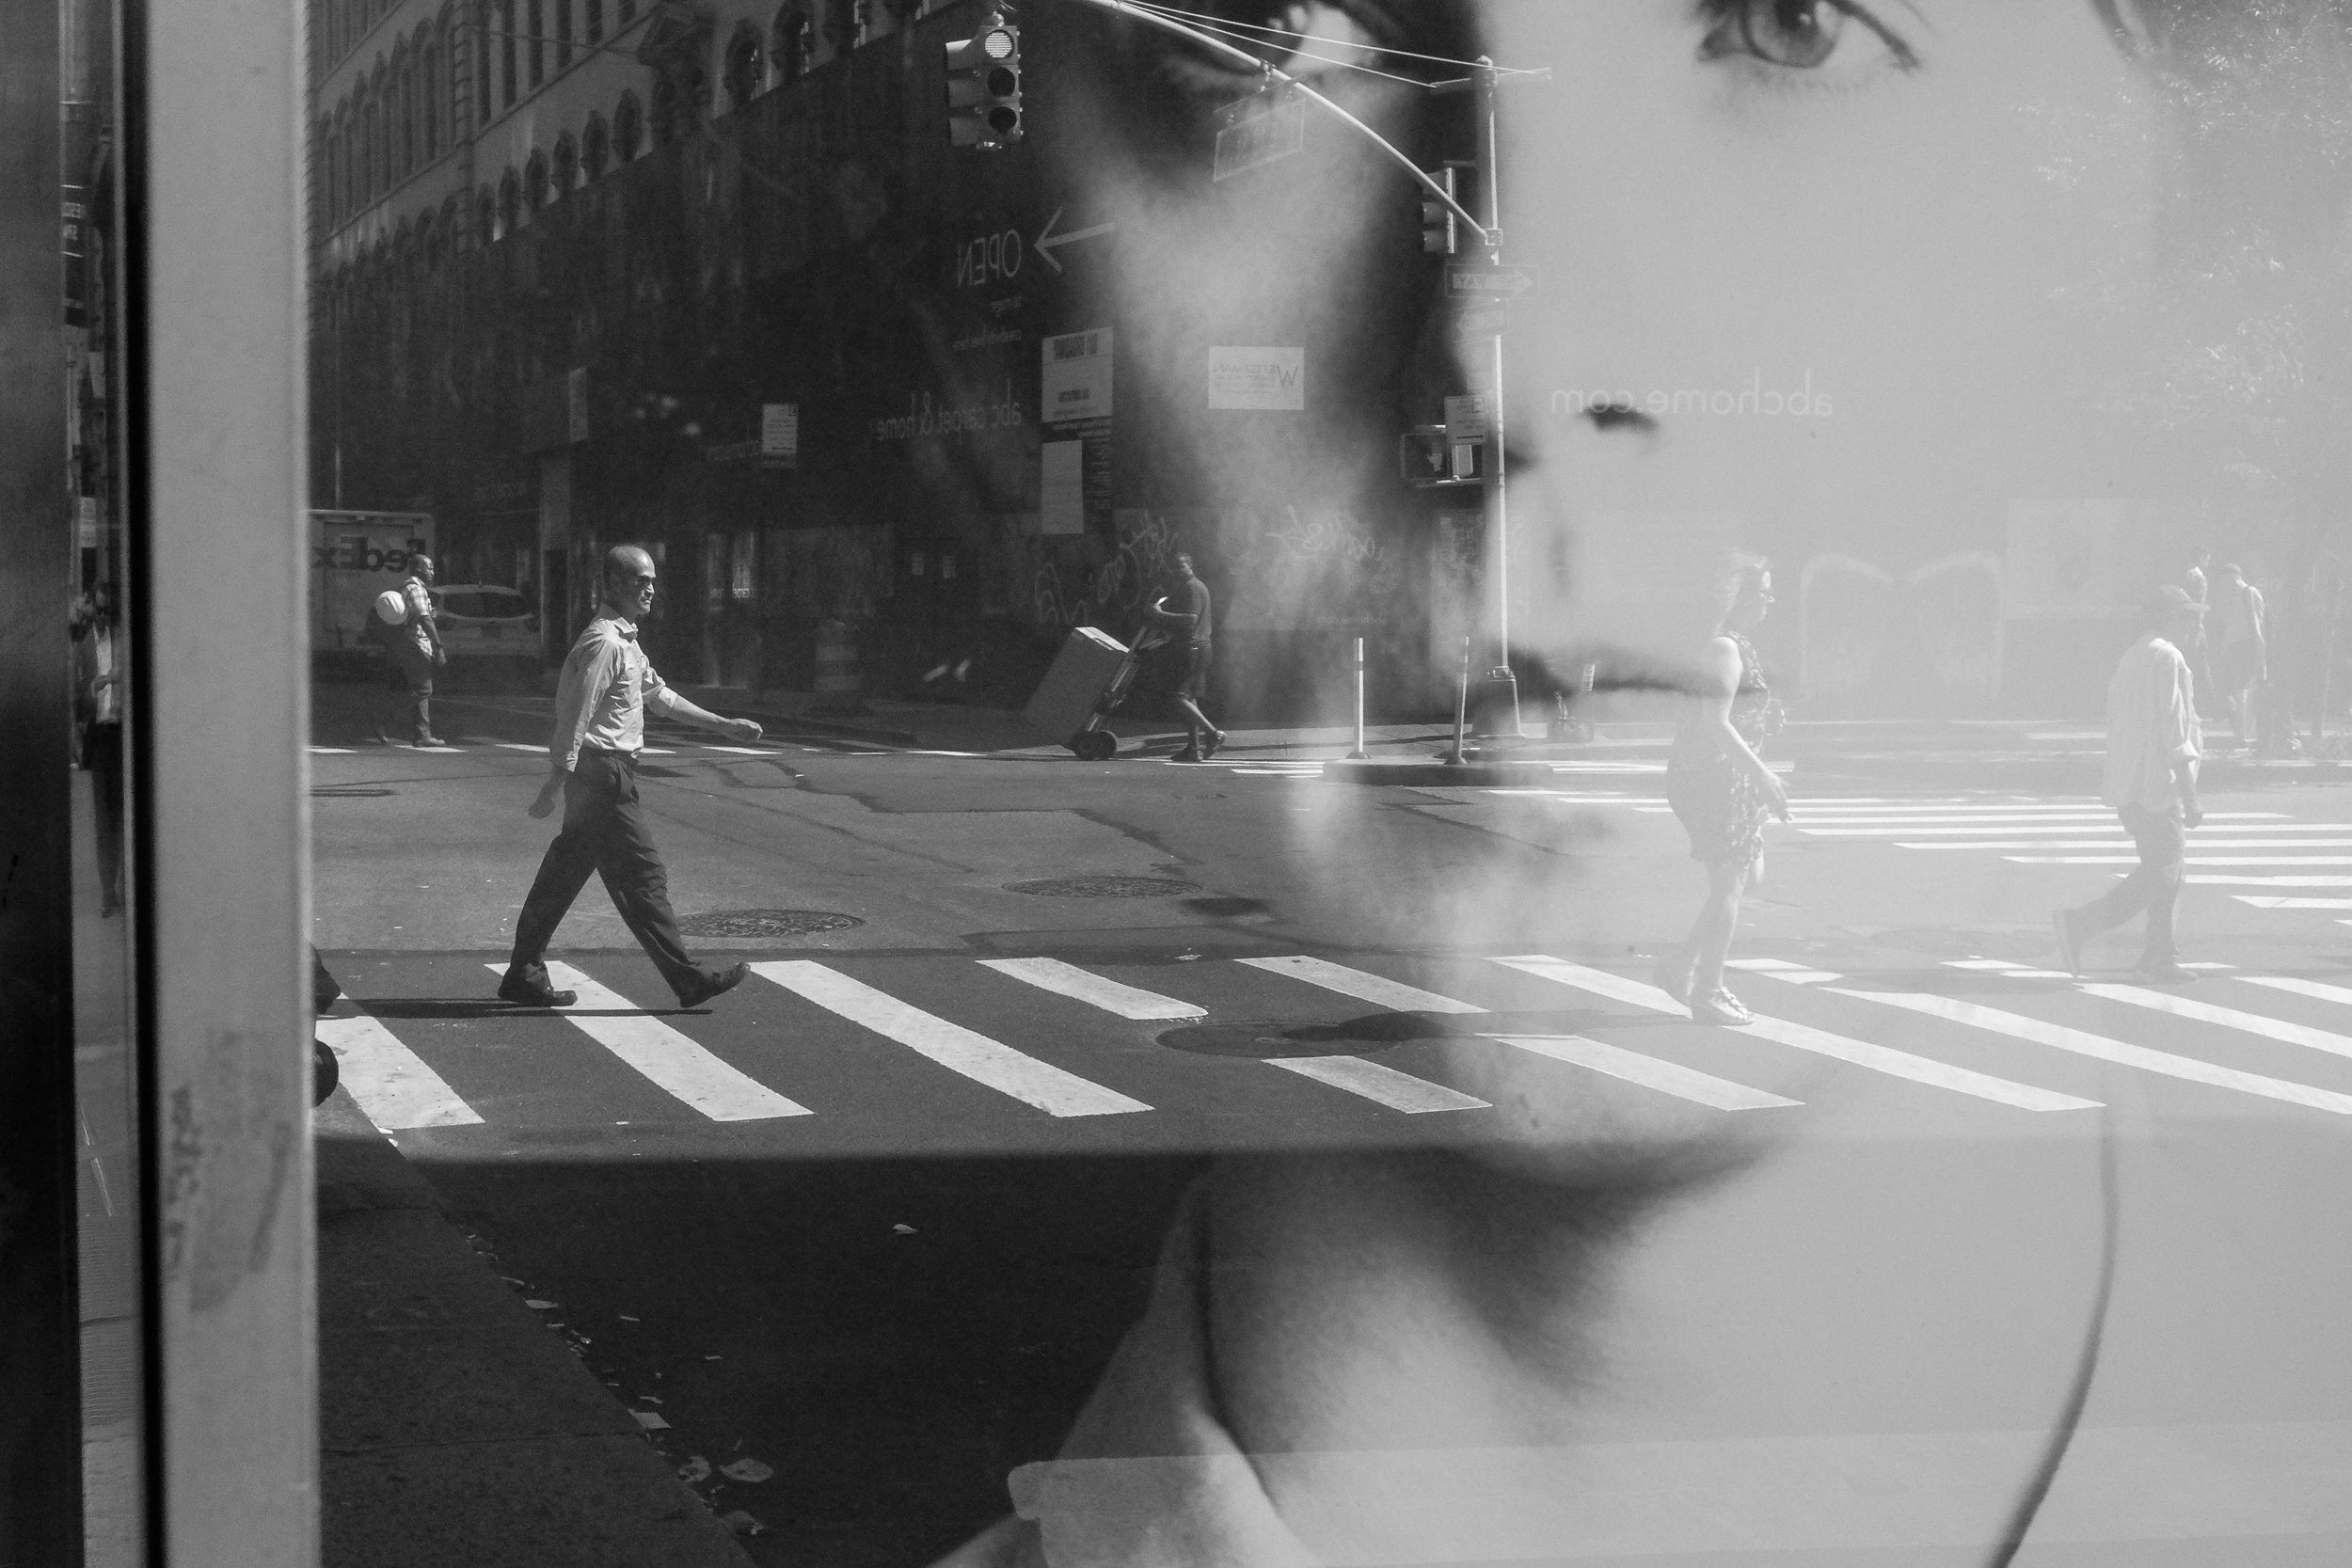 """Reflections - """"Puddles, car mirrors, store fronts… the possibilities are endless with reflective surfaces. Utilize them as a way to add layers to your image."""""""